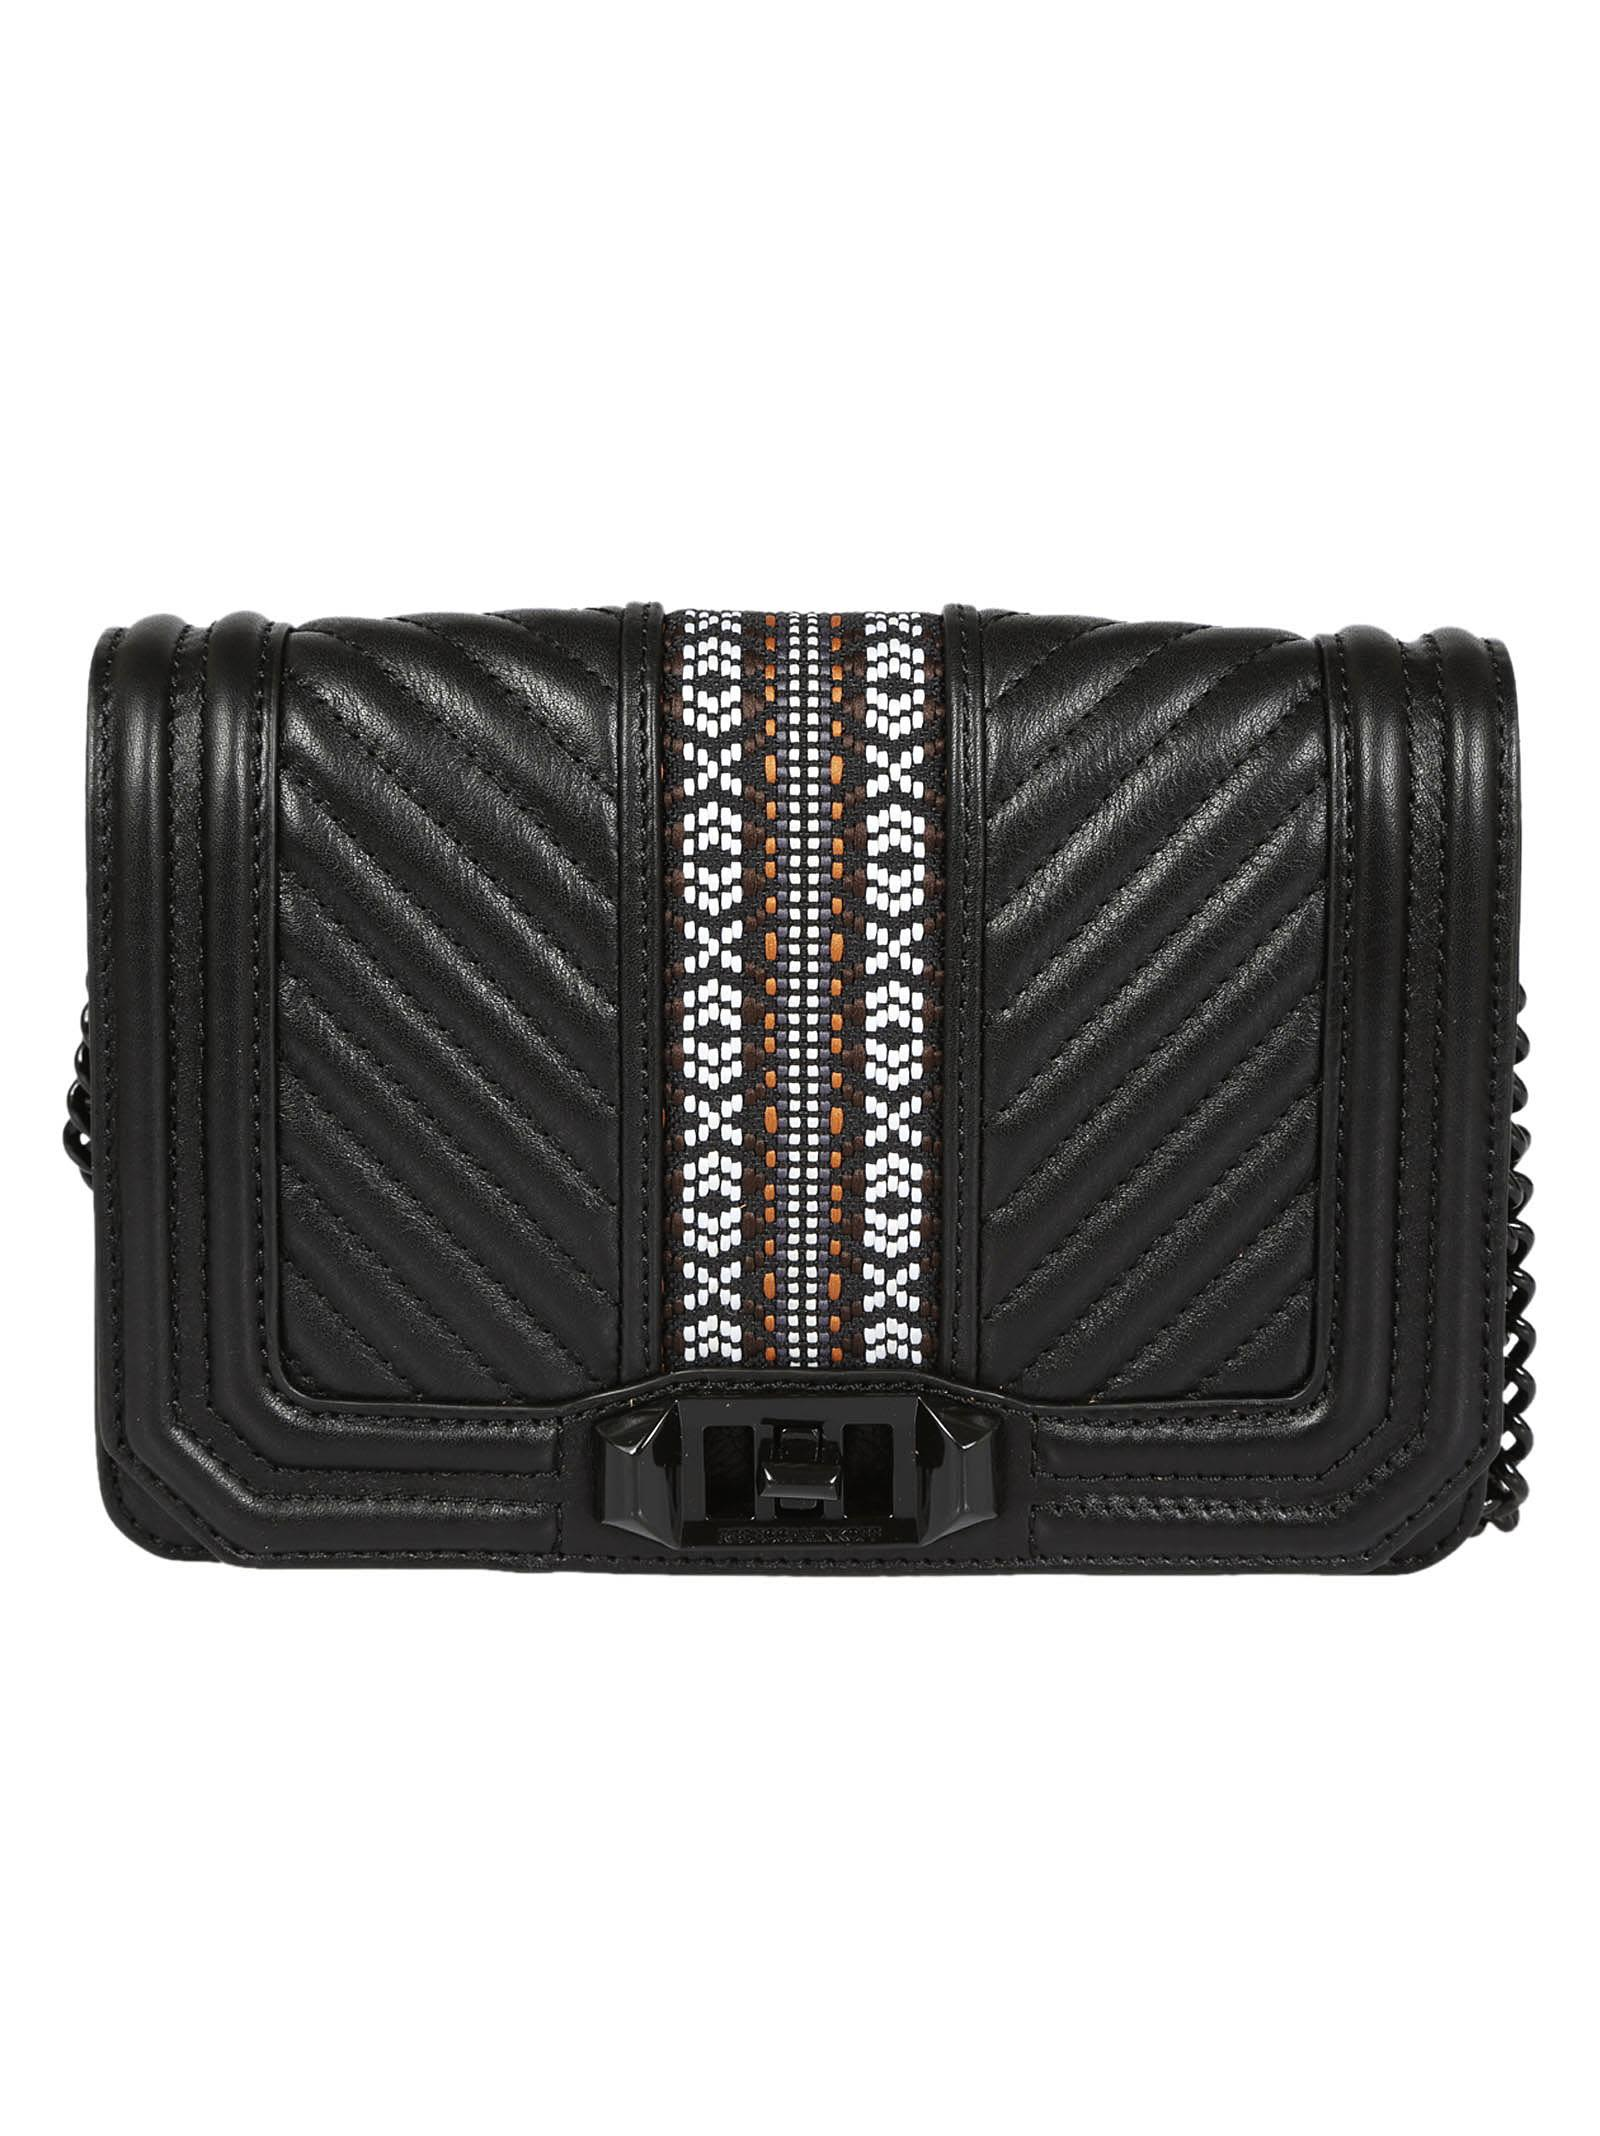 Rebecca Minkoff Jacquard Small Love Crossbody Bag